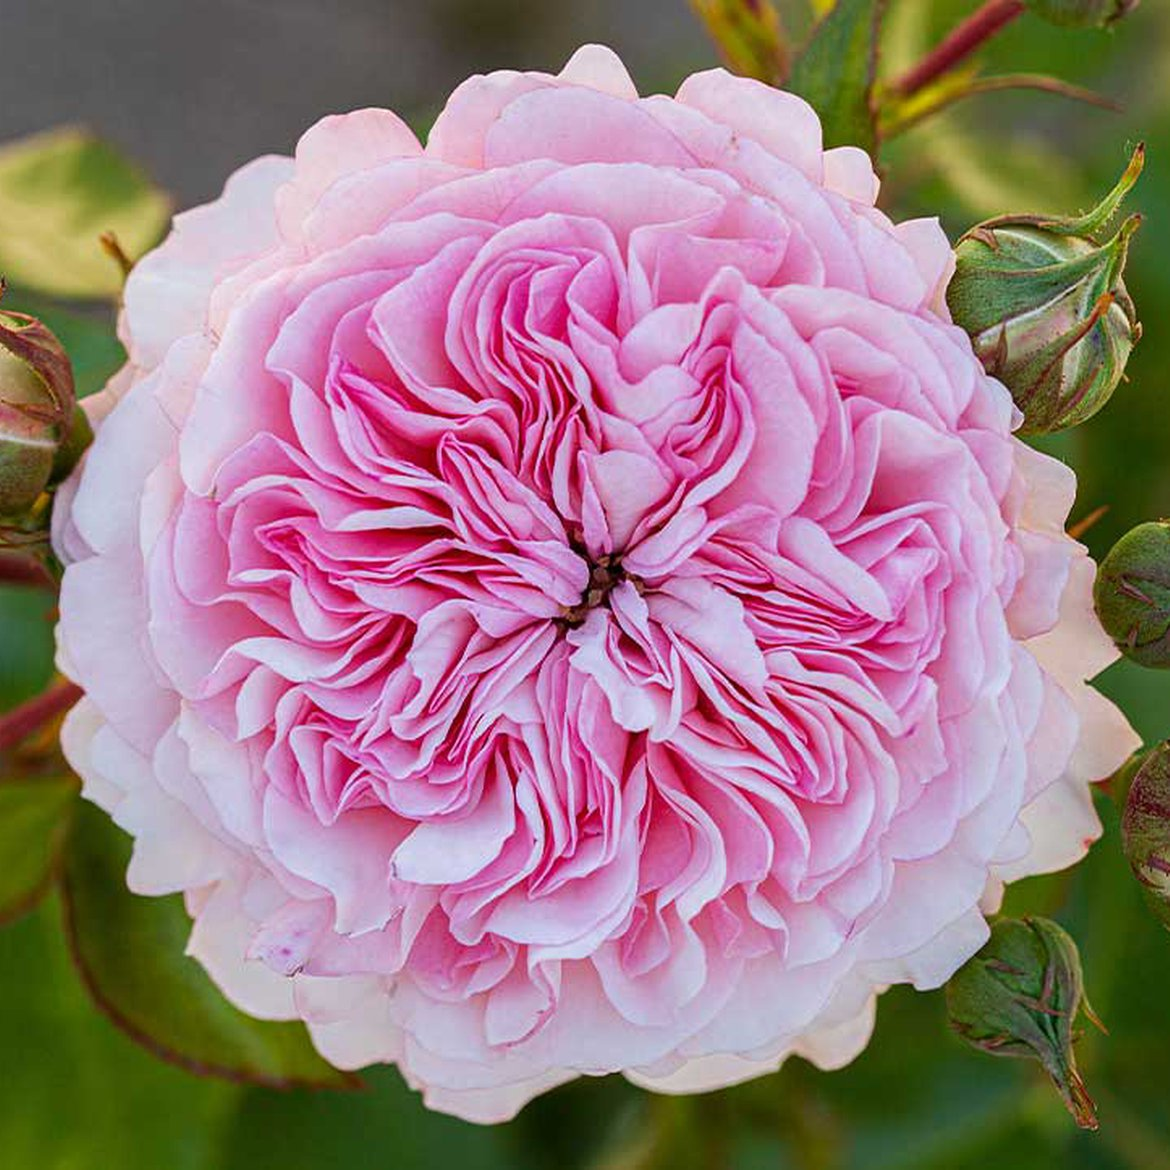 Rose 'Rosa Maria Theresia'